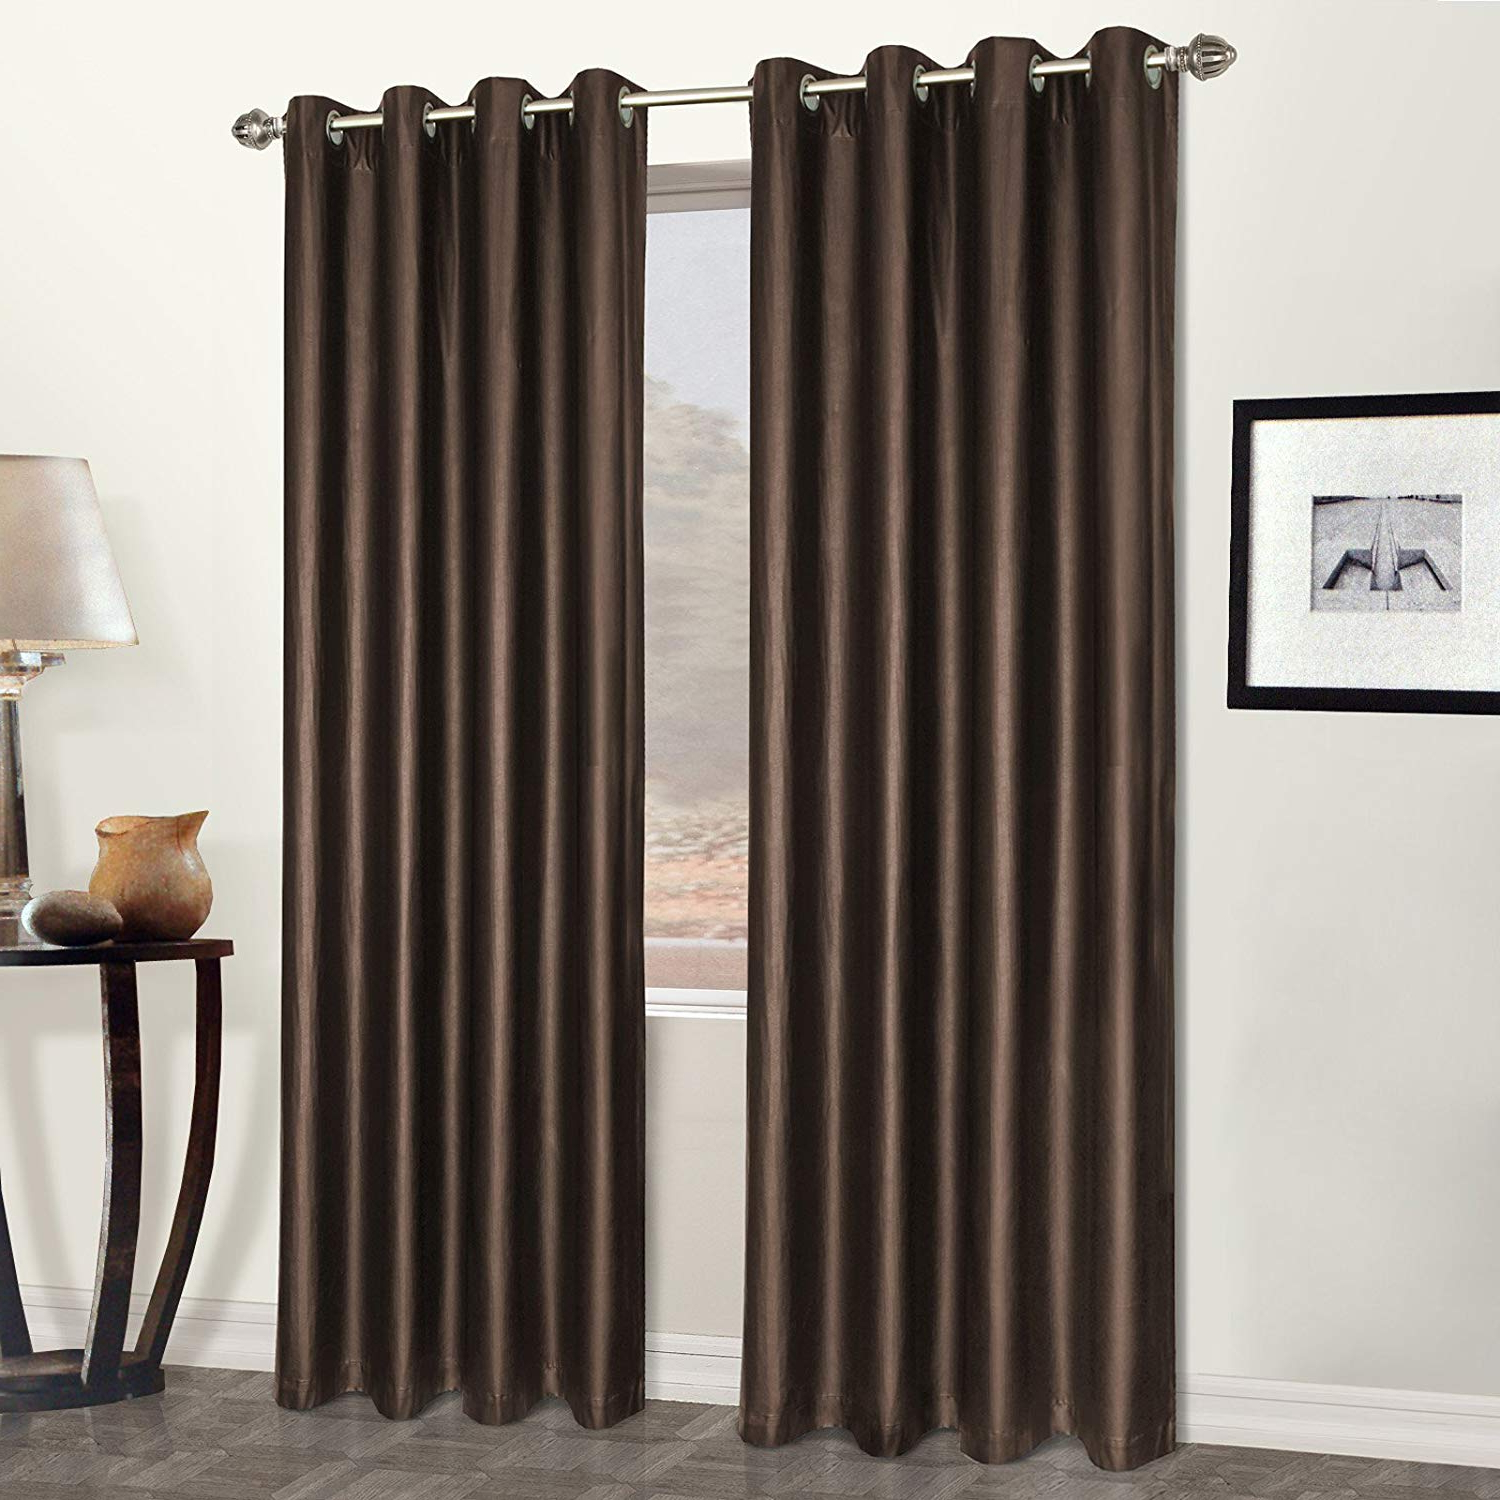 United Curtain Faux Leather Heavy Window Curtain Panel, 5284 Inch, Brown With Widely Used Luxury Collection Faux Leather Blackout Single Curtain Panels (View 19 of 20)